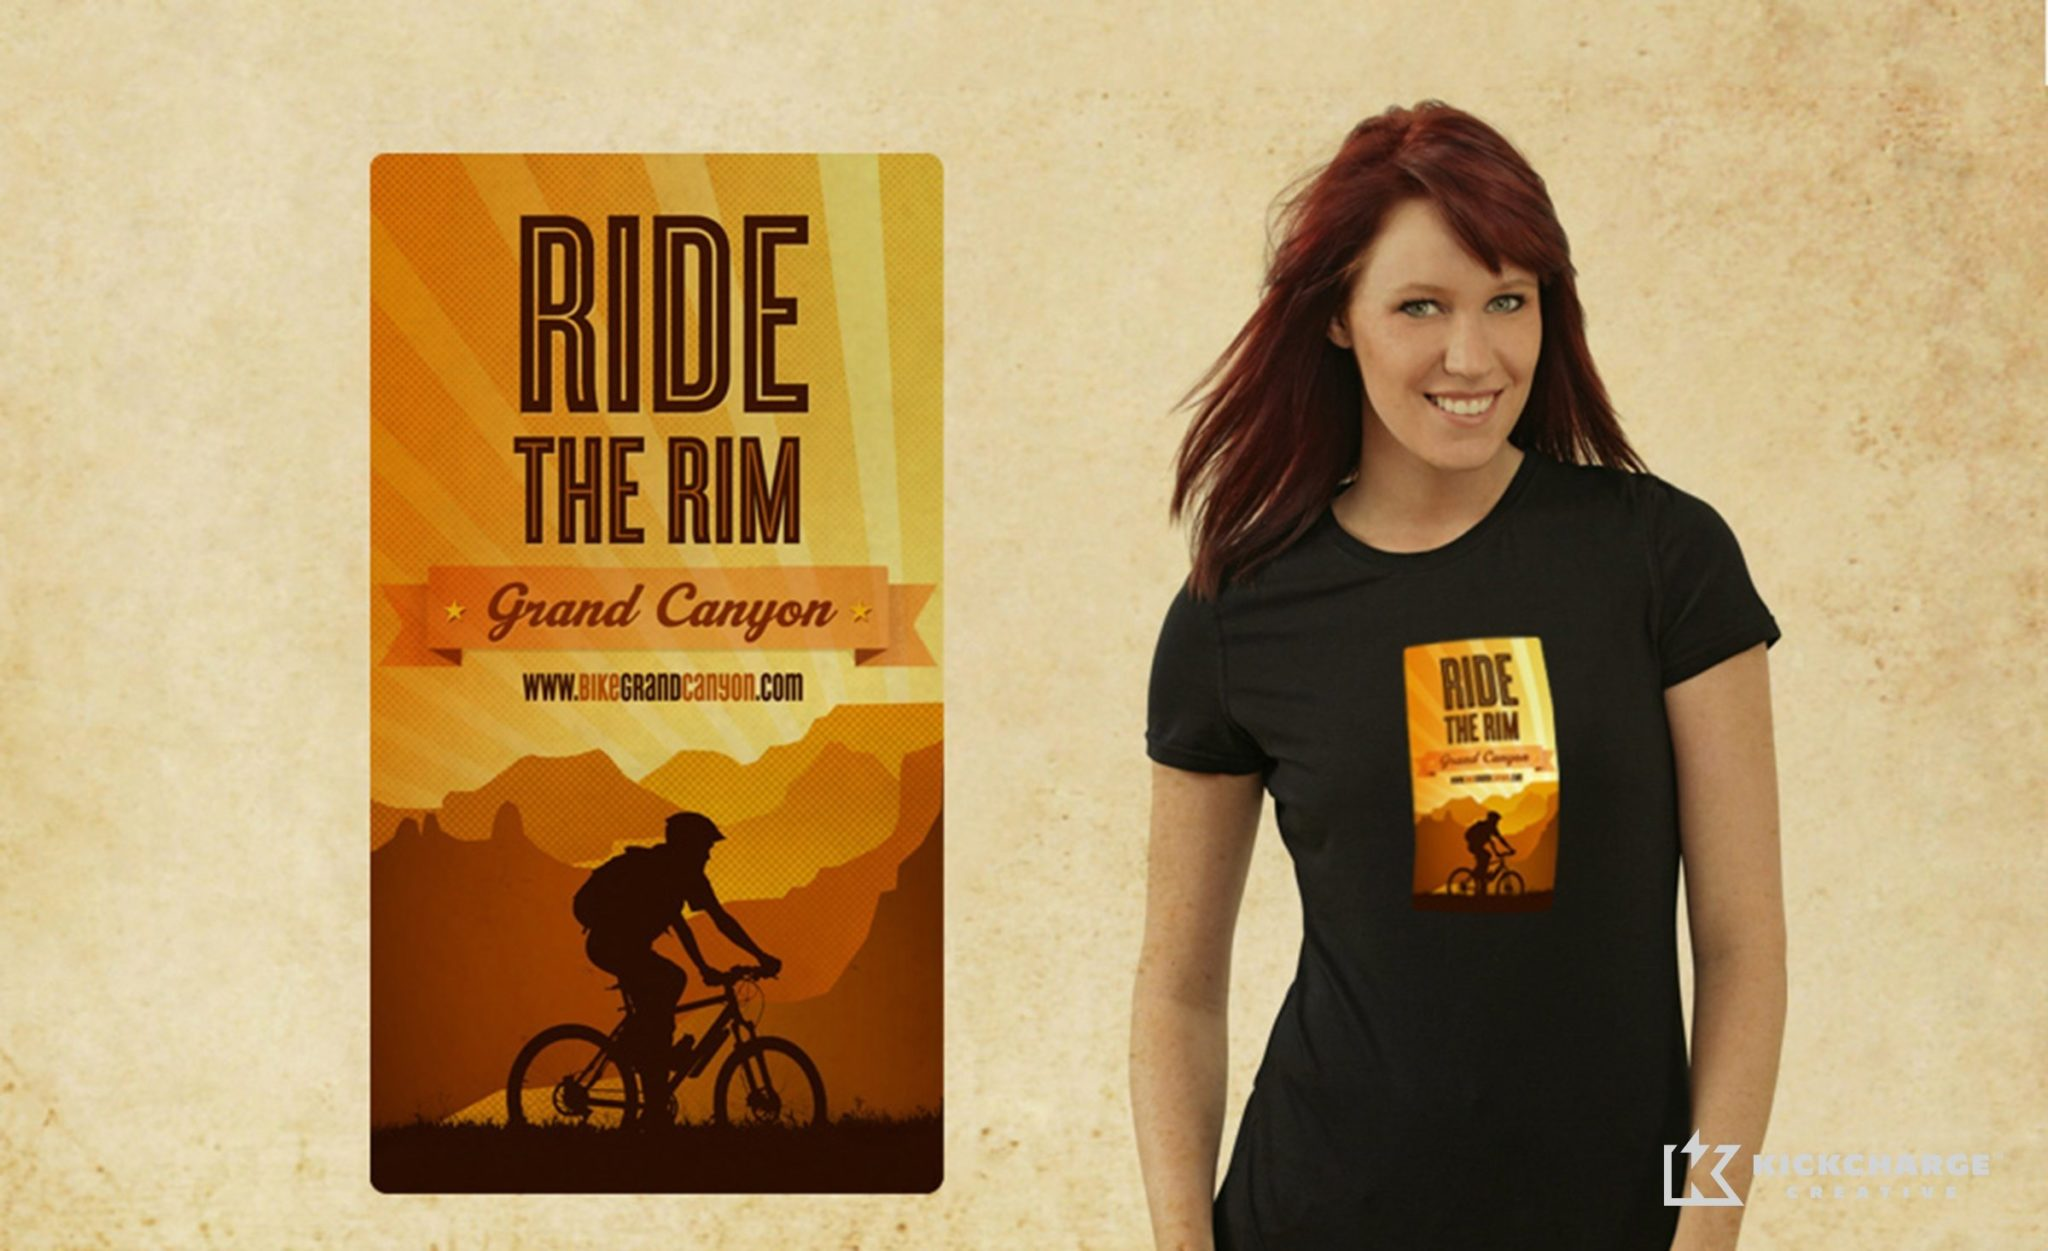 Shirt design for a company that offers bicycle rentals and tours in the Grand Canyon.